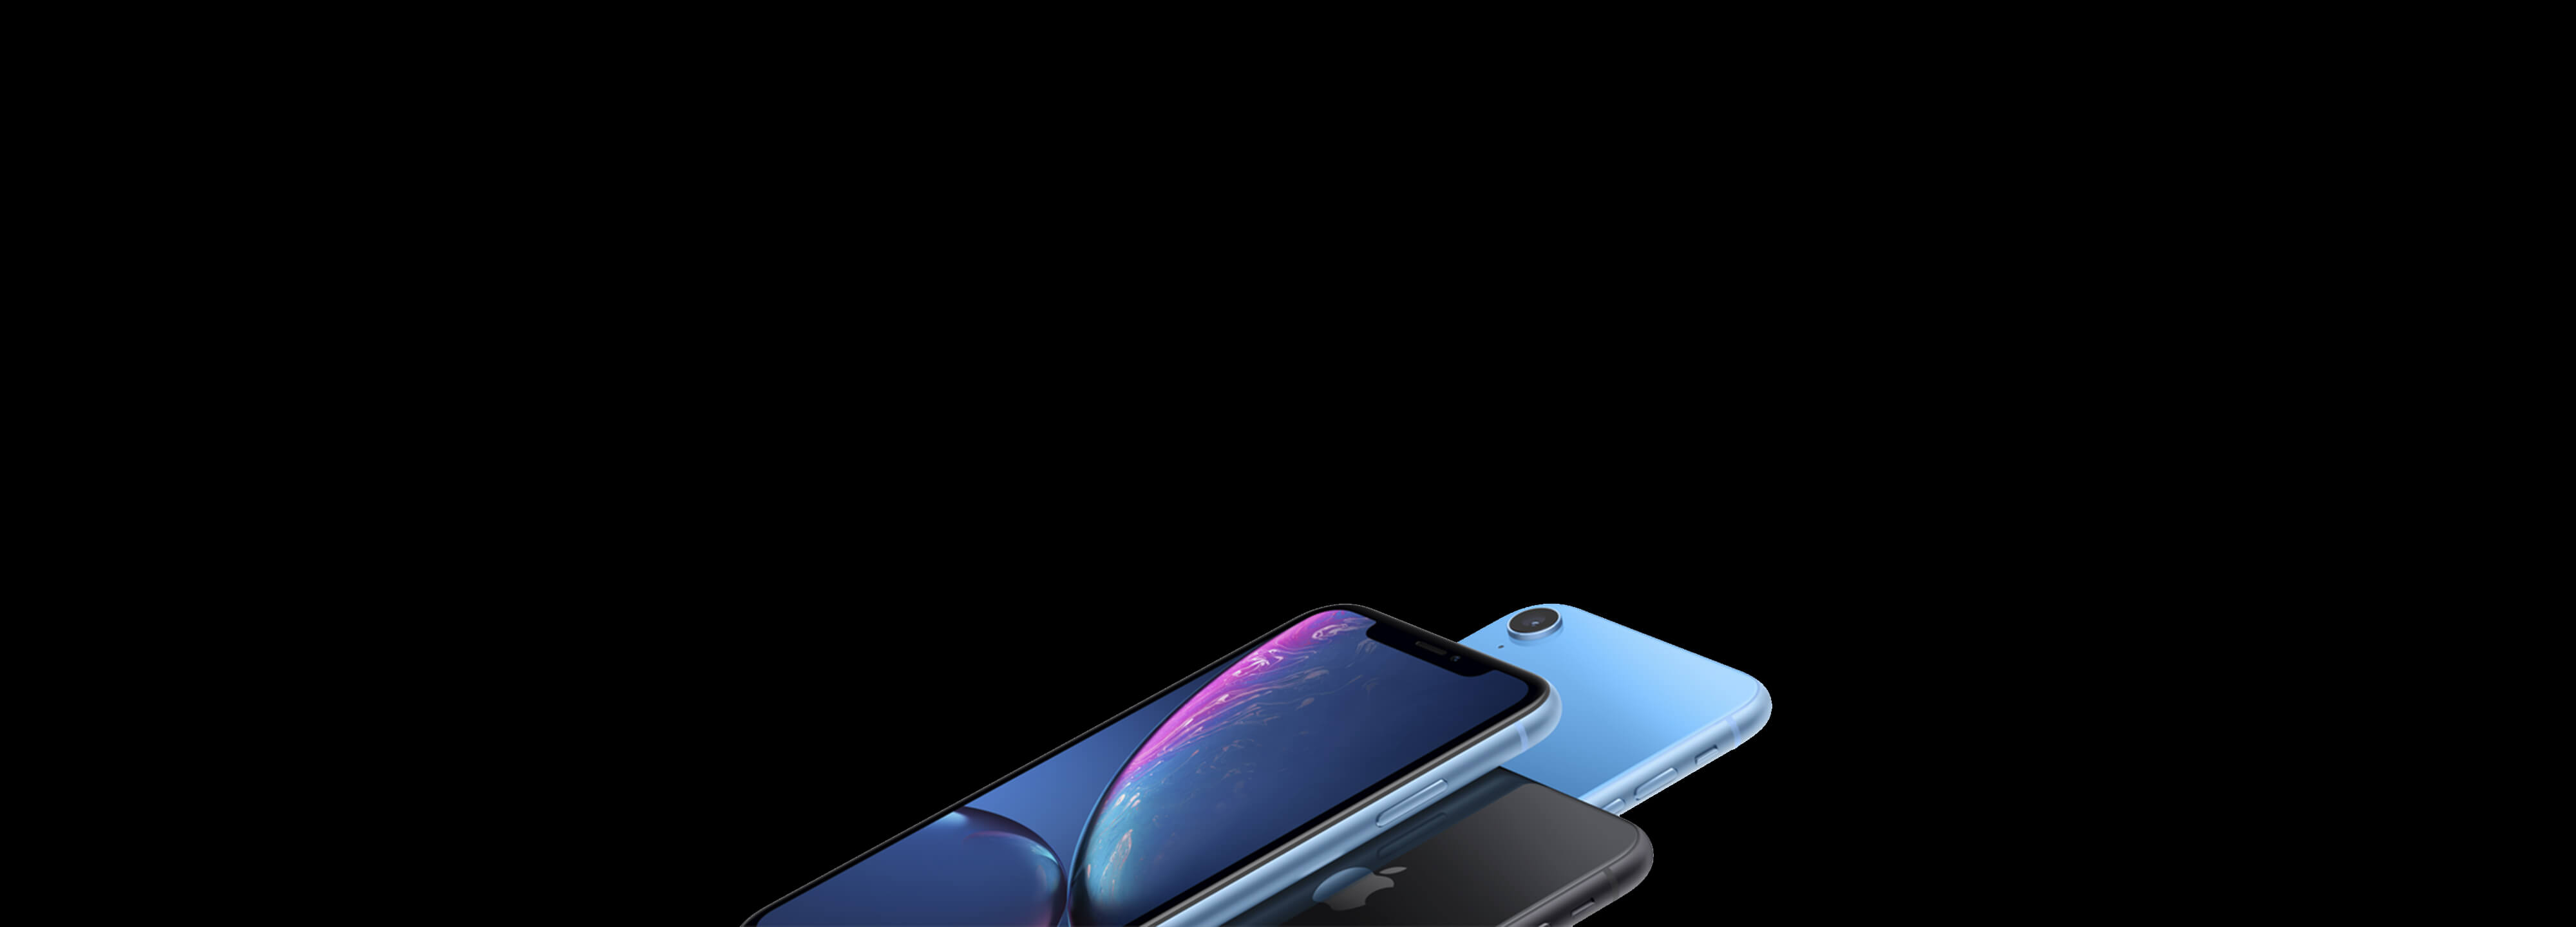 iPhone Xr main